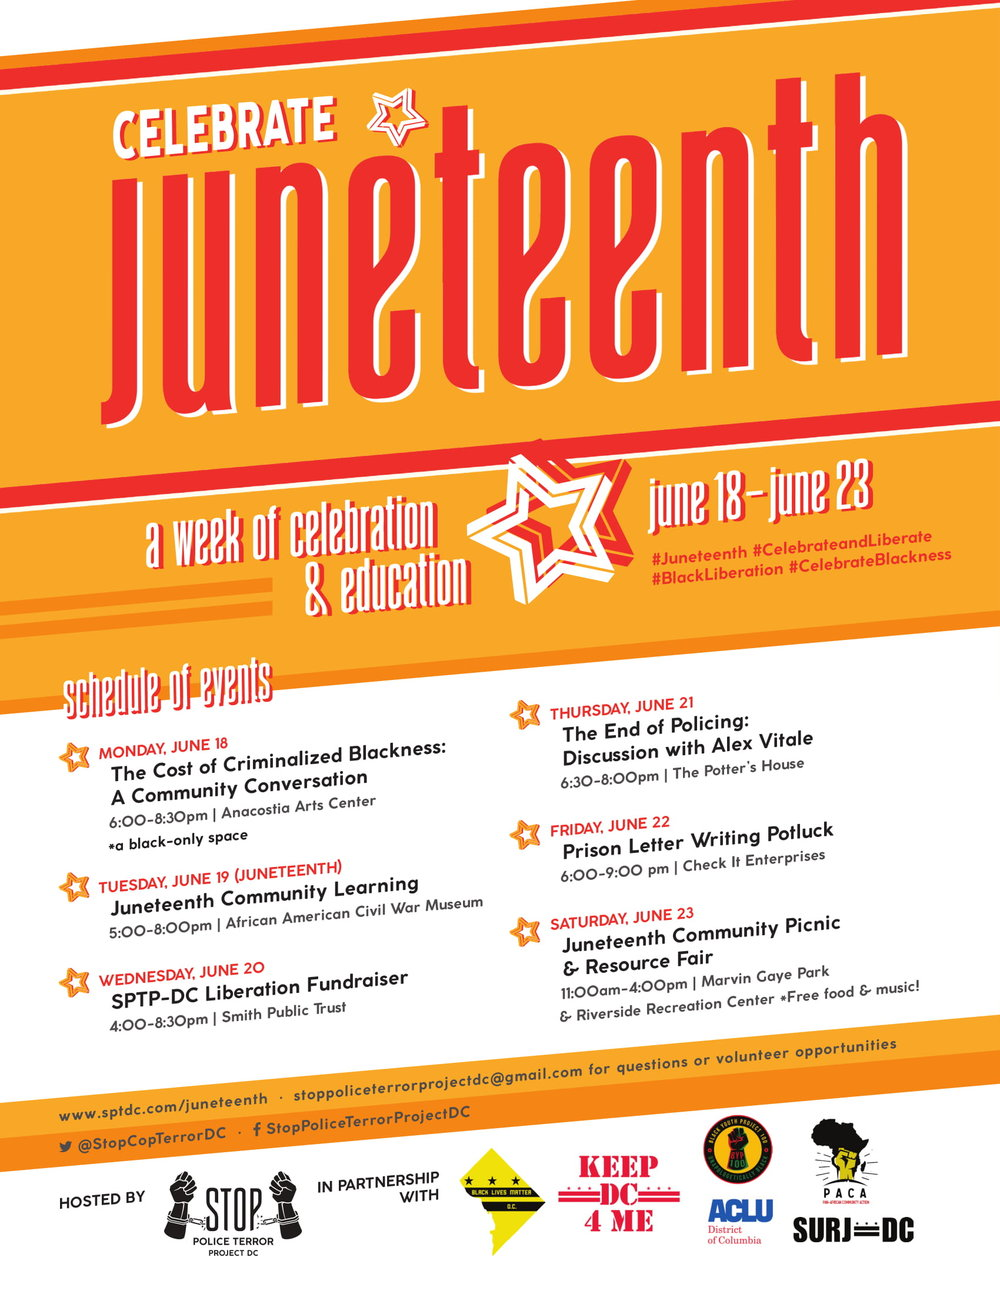 Copy of juneteenth-flyer-060118-1.jpg